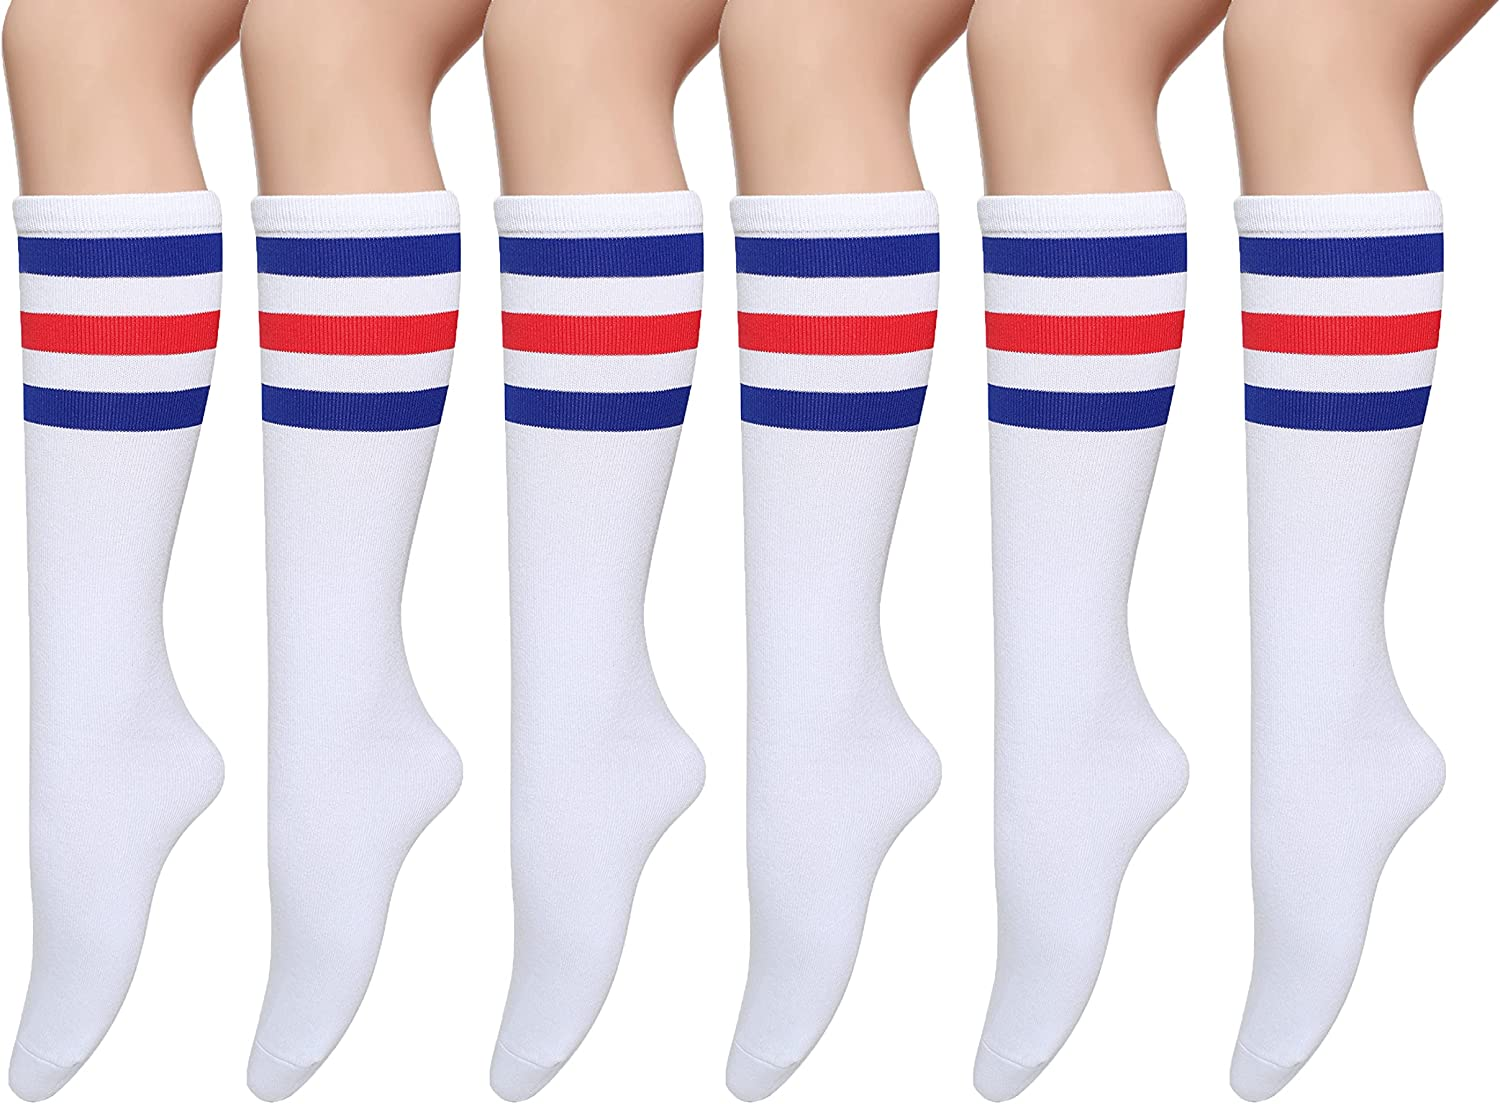 Pareberry Casual Cotton Solid & Triple Stripe Colors Knee High Tube Socks-3 Pairs